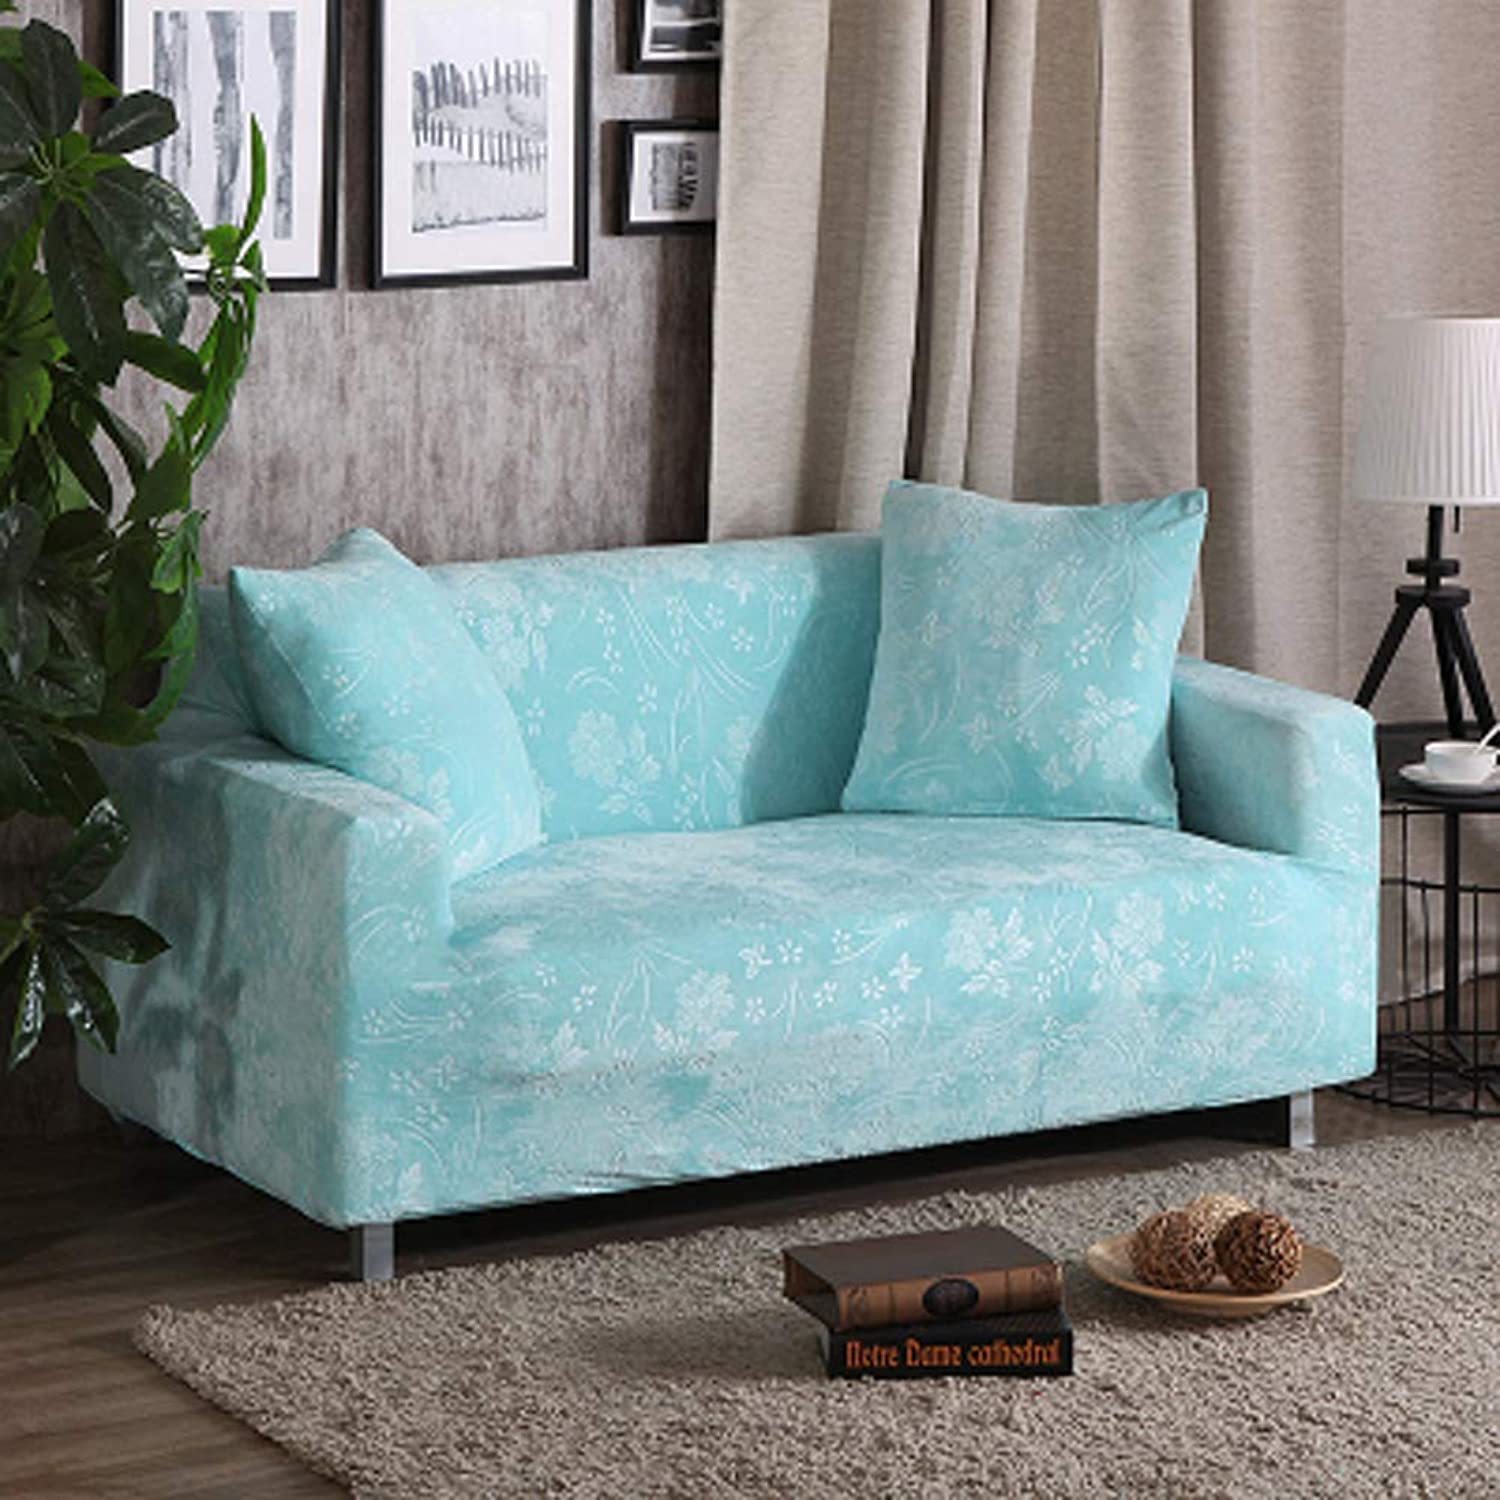 Sofa Furniture Predector for Pets Kids,High Elasticity Sofa slipcovers Thicken Non-Slip Couch Cover sectional Sofa Throw pad Sofa Throw Slip Cover-I 2 Seater(55  73inch)